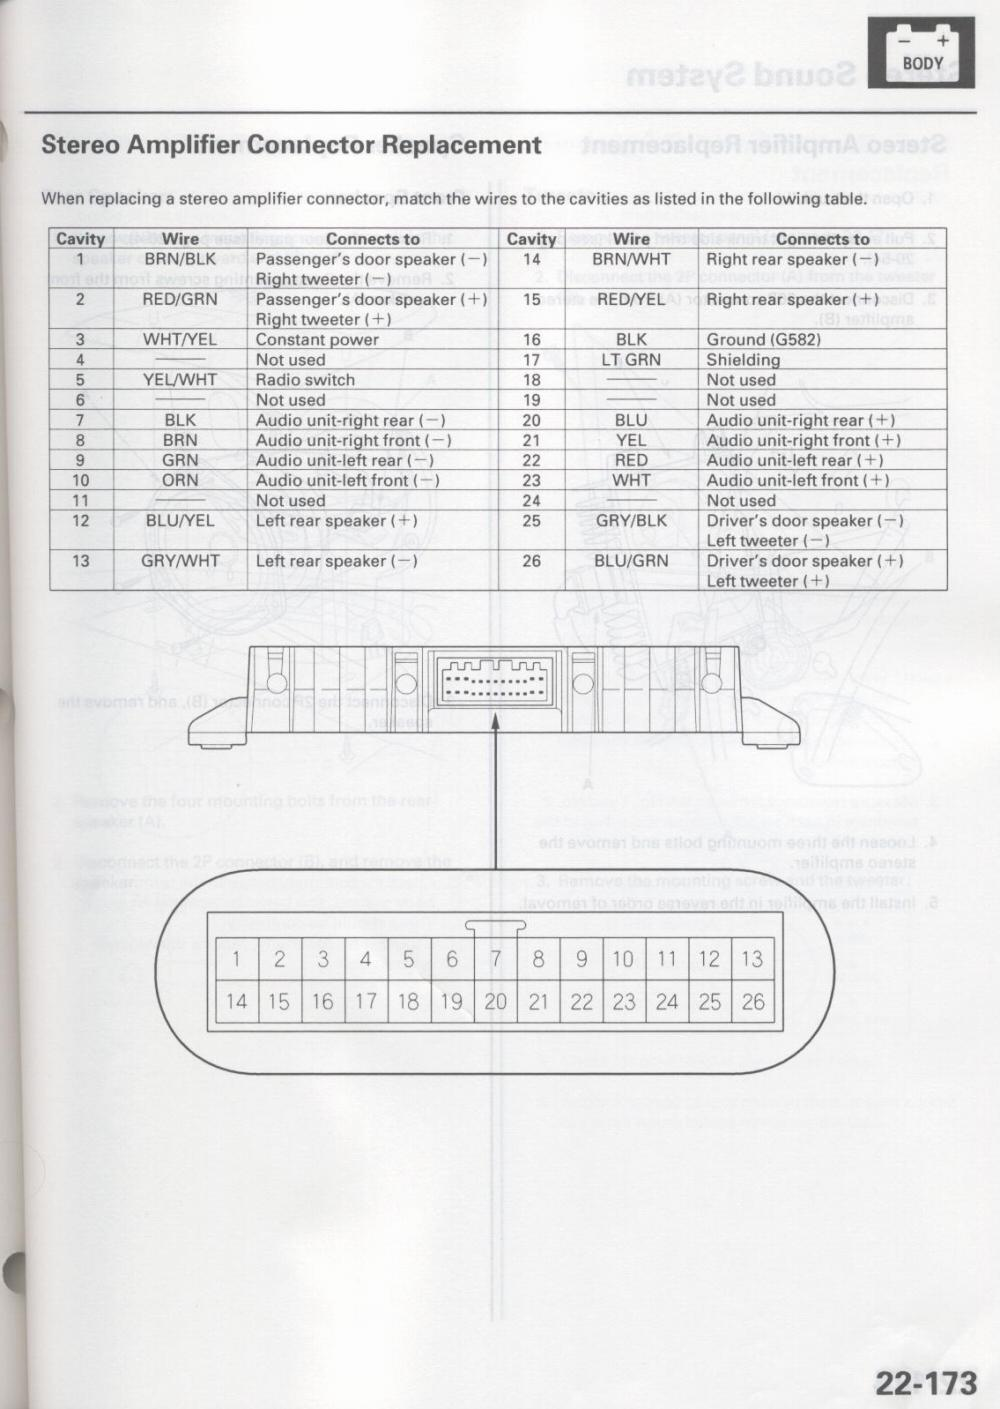 Car Stereo Wiring Diagram Honda : Acura tl head unit pinout diagram pinoutguide